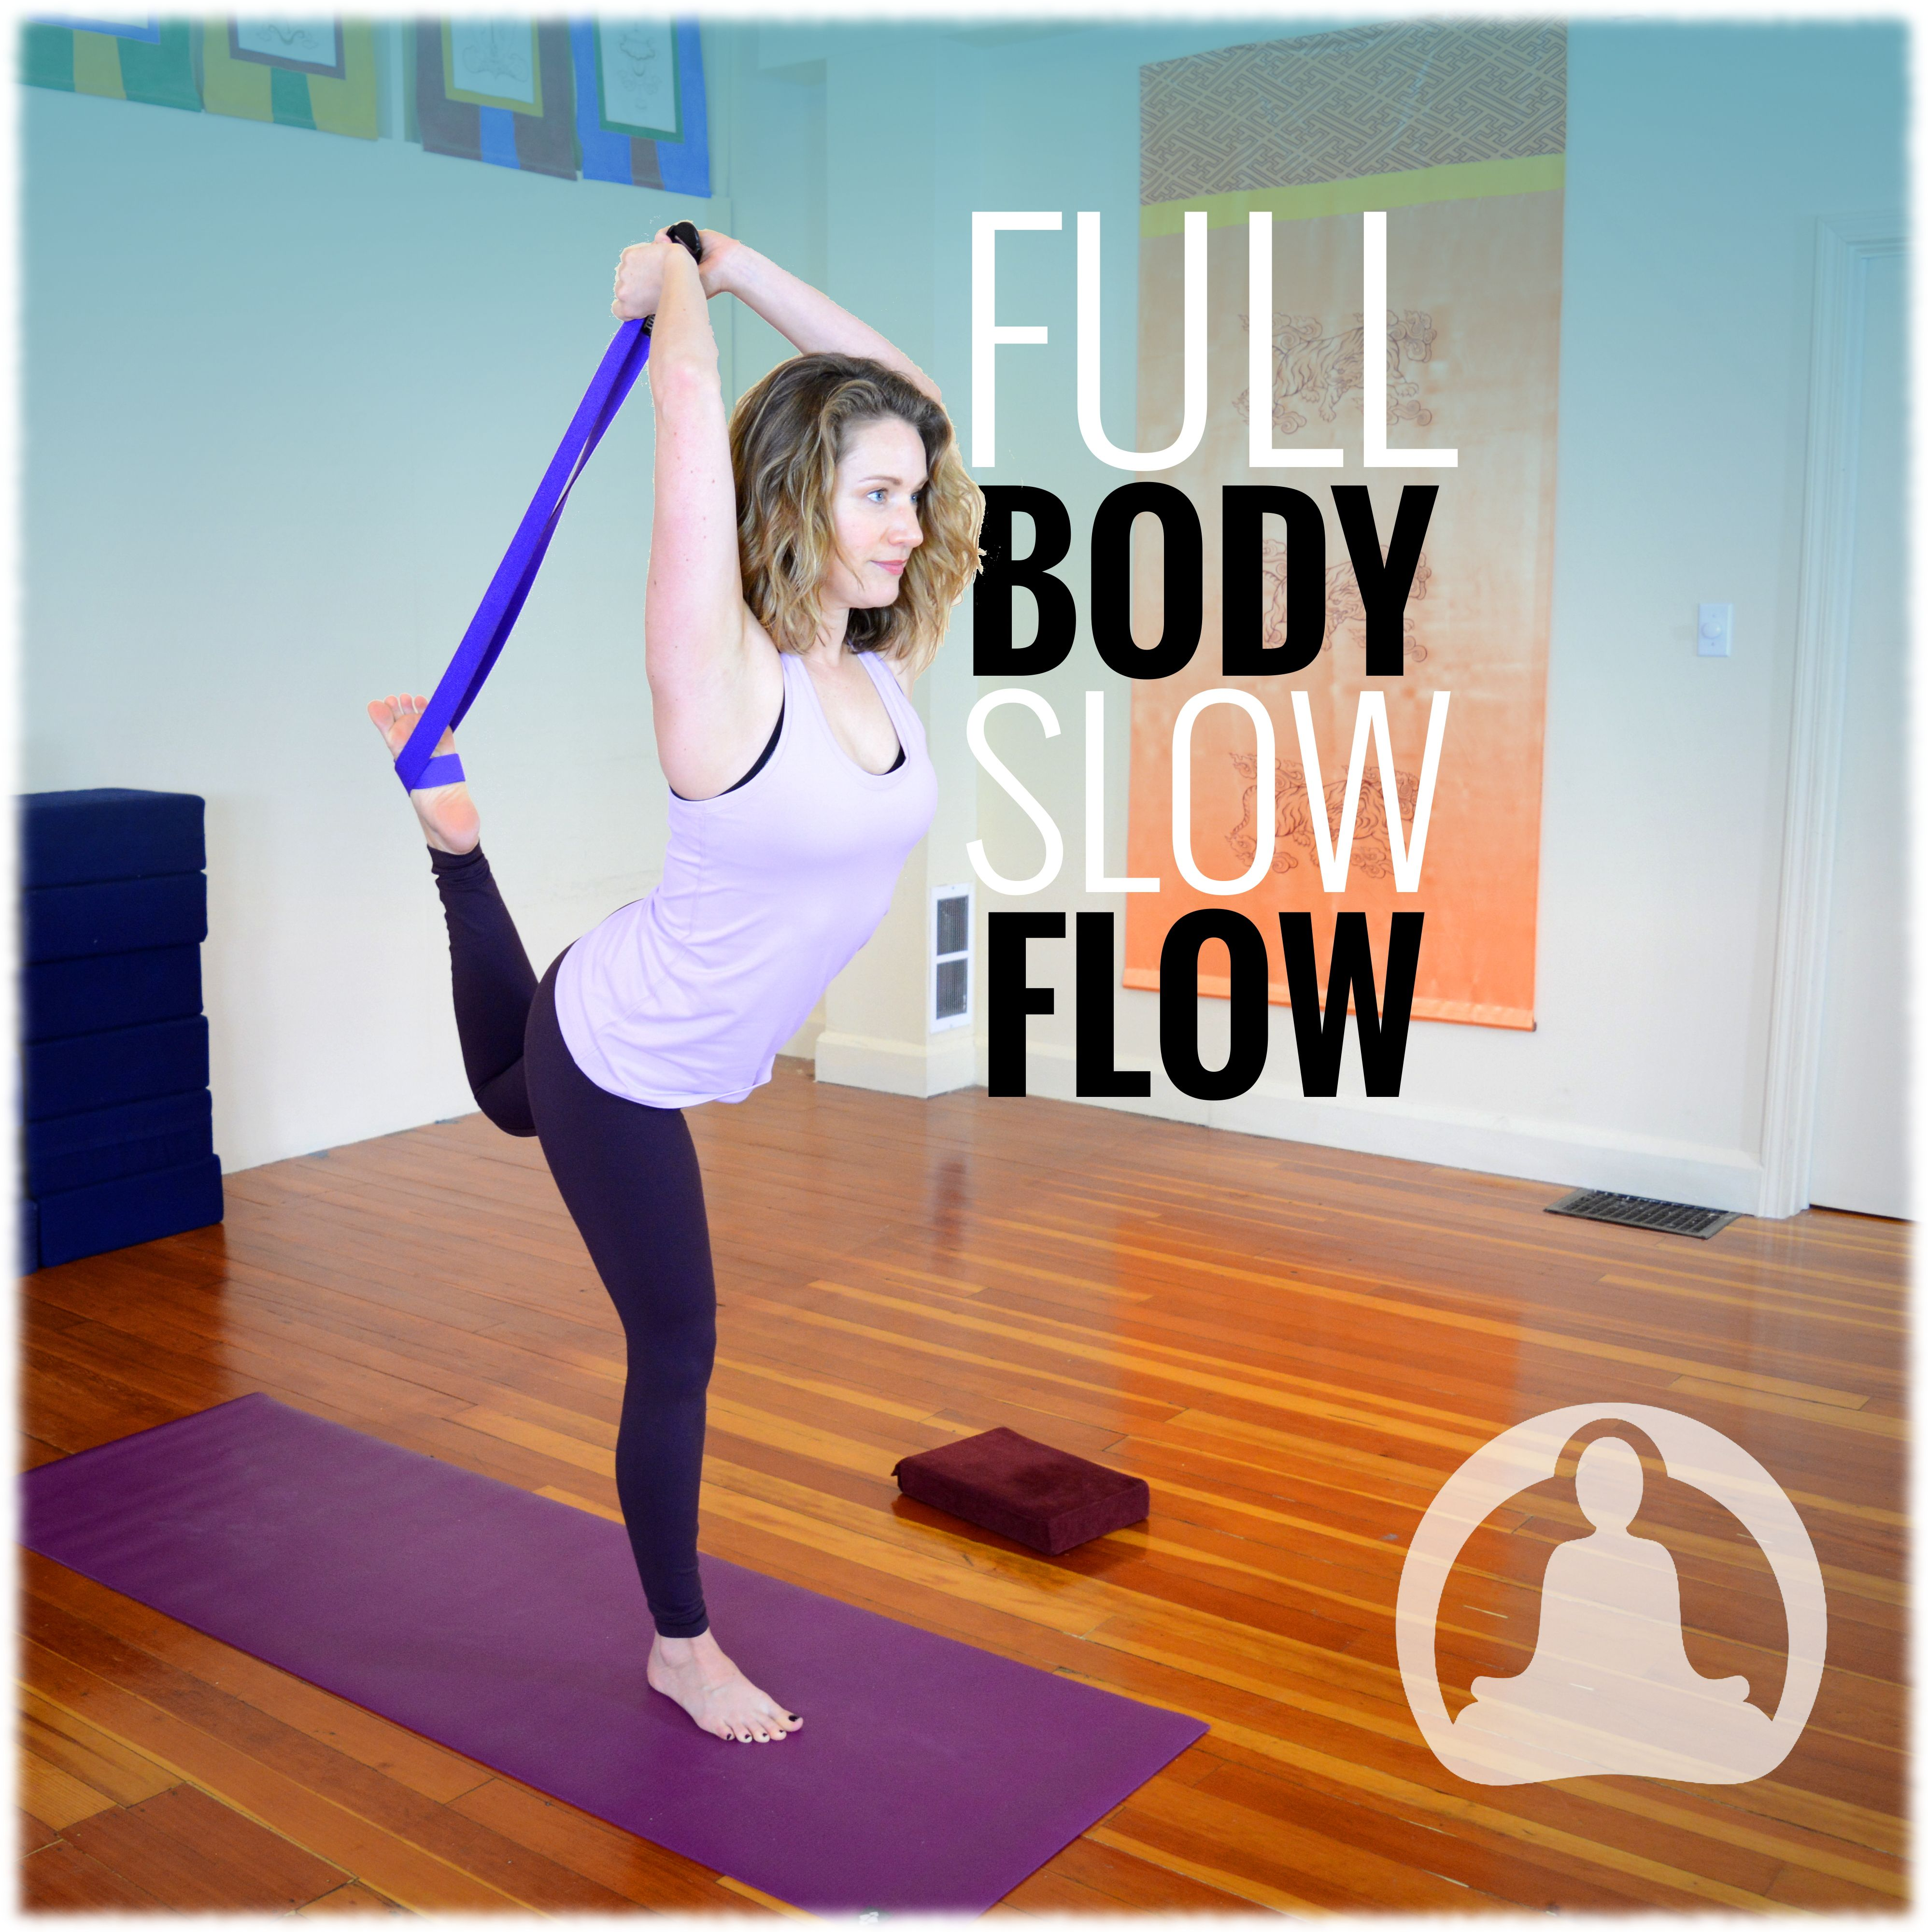 This hatha flow yoga class with melissa has a nice slow